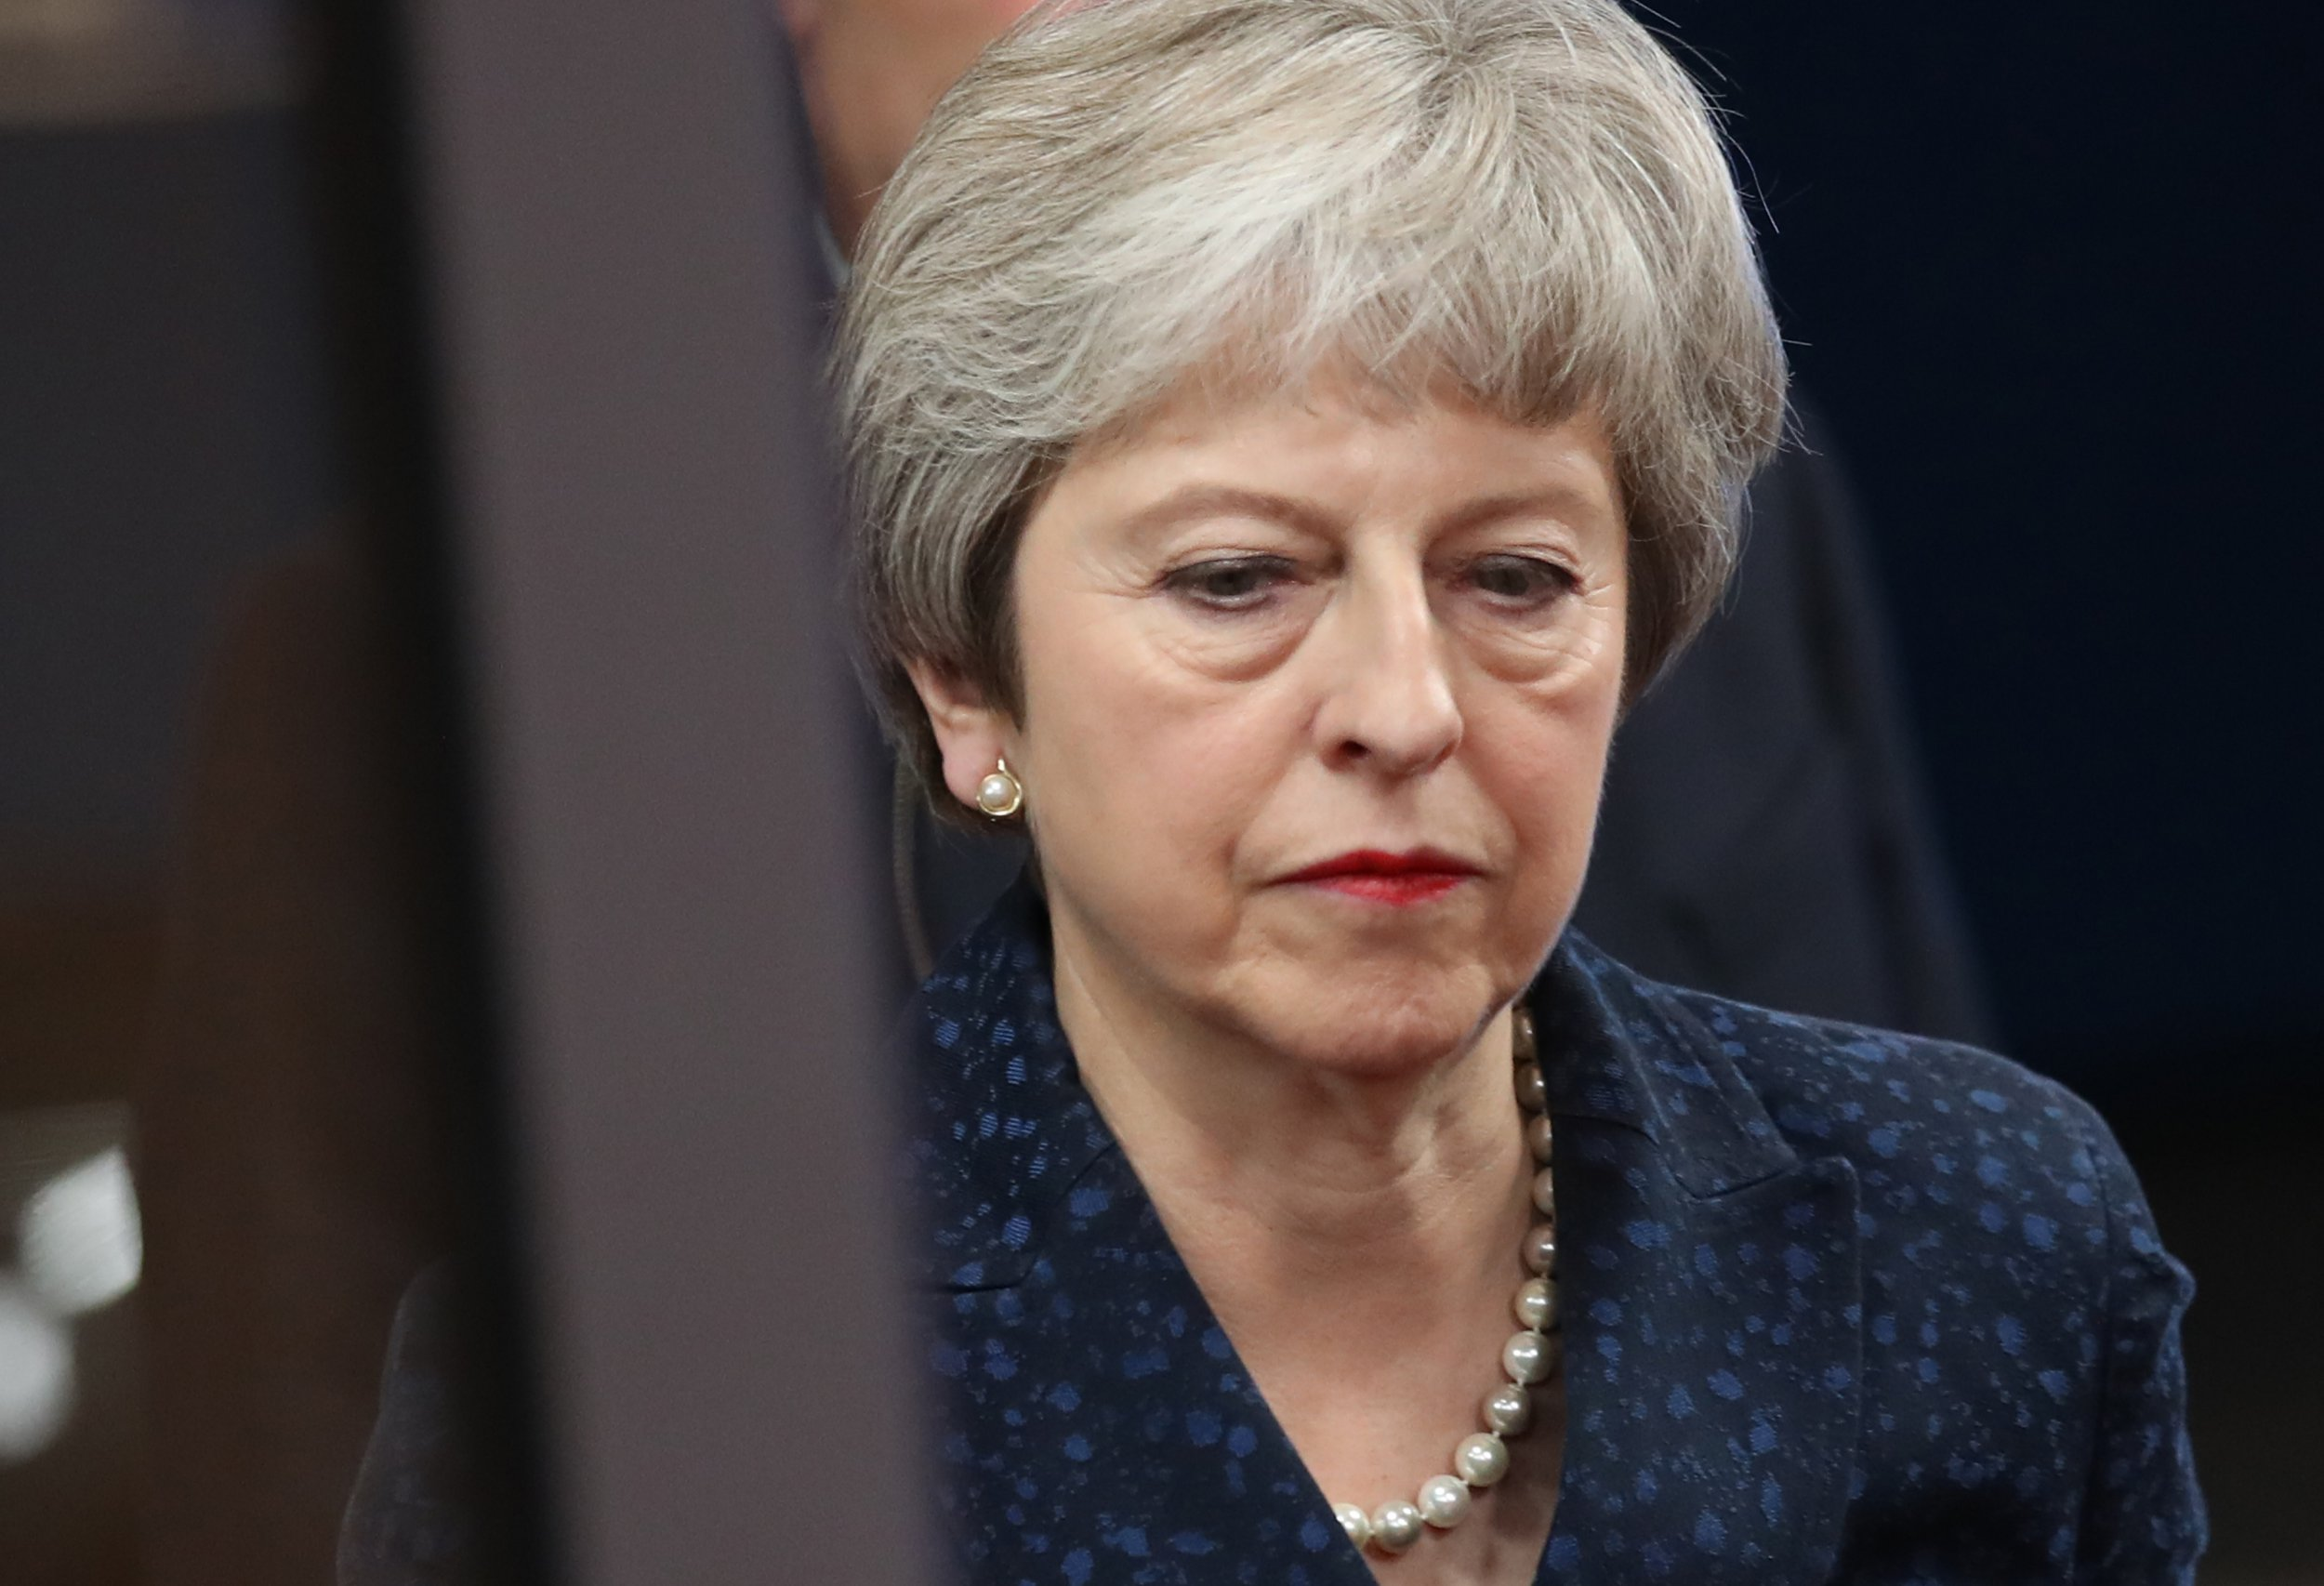 BRUSSEL, BELGIUM - NOVEMBER 24: British Prime Minister Theresa May arrives at the European Council to meet with European Council President Donald Tusk the day before a summit of the European Council on Brexit on November 24, 2018 in Brussels, Belgium. Leaders of the 27 remaining member states of the European Union are scheduled to meet tomorrow in Brussels over whether to approve the United Kingdom's withdrawal agreement for leaving the European Union and the political declaration that will set the course for the U.K.'s relationship with the E.U. once Brexit is complete. (Photo by Sean Gallup/Getty Images)